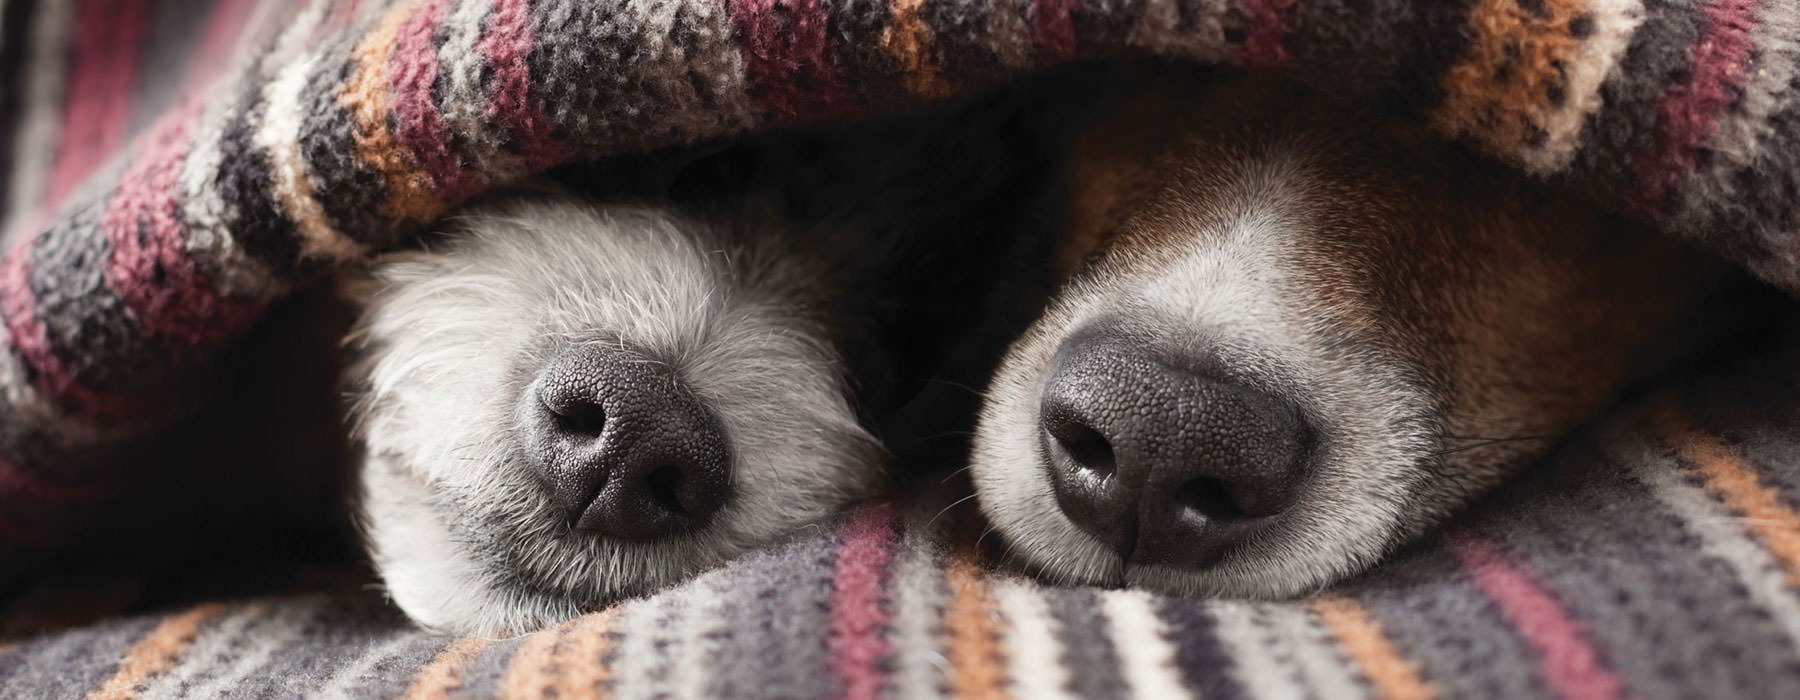 lifestyle image of dogs